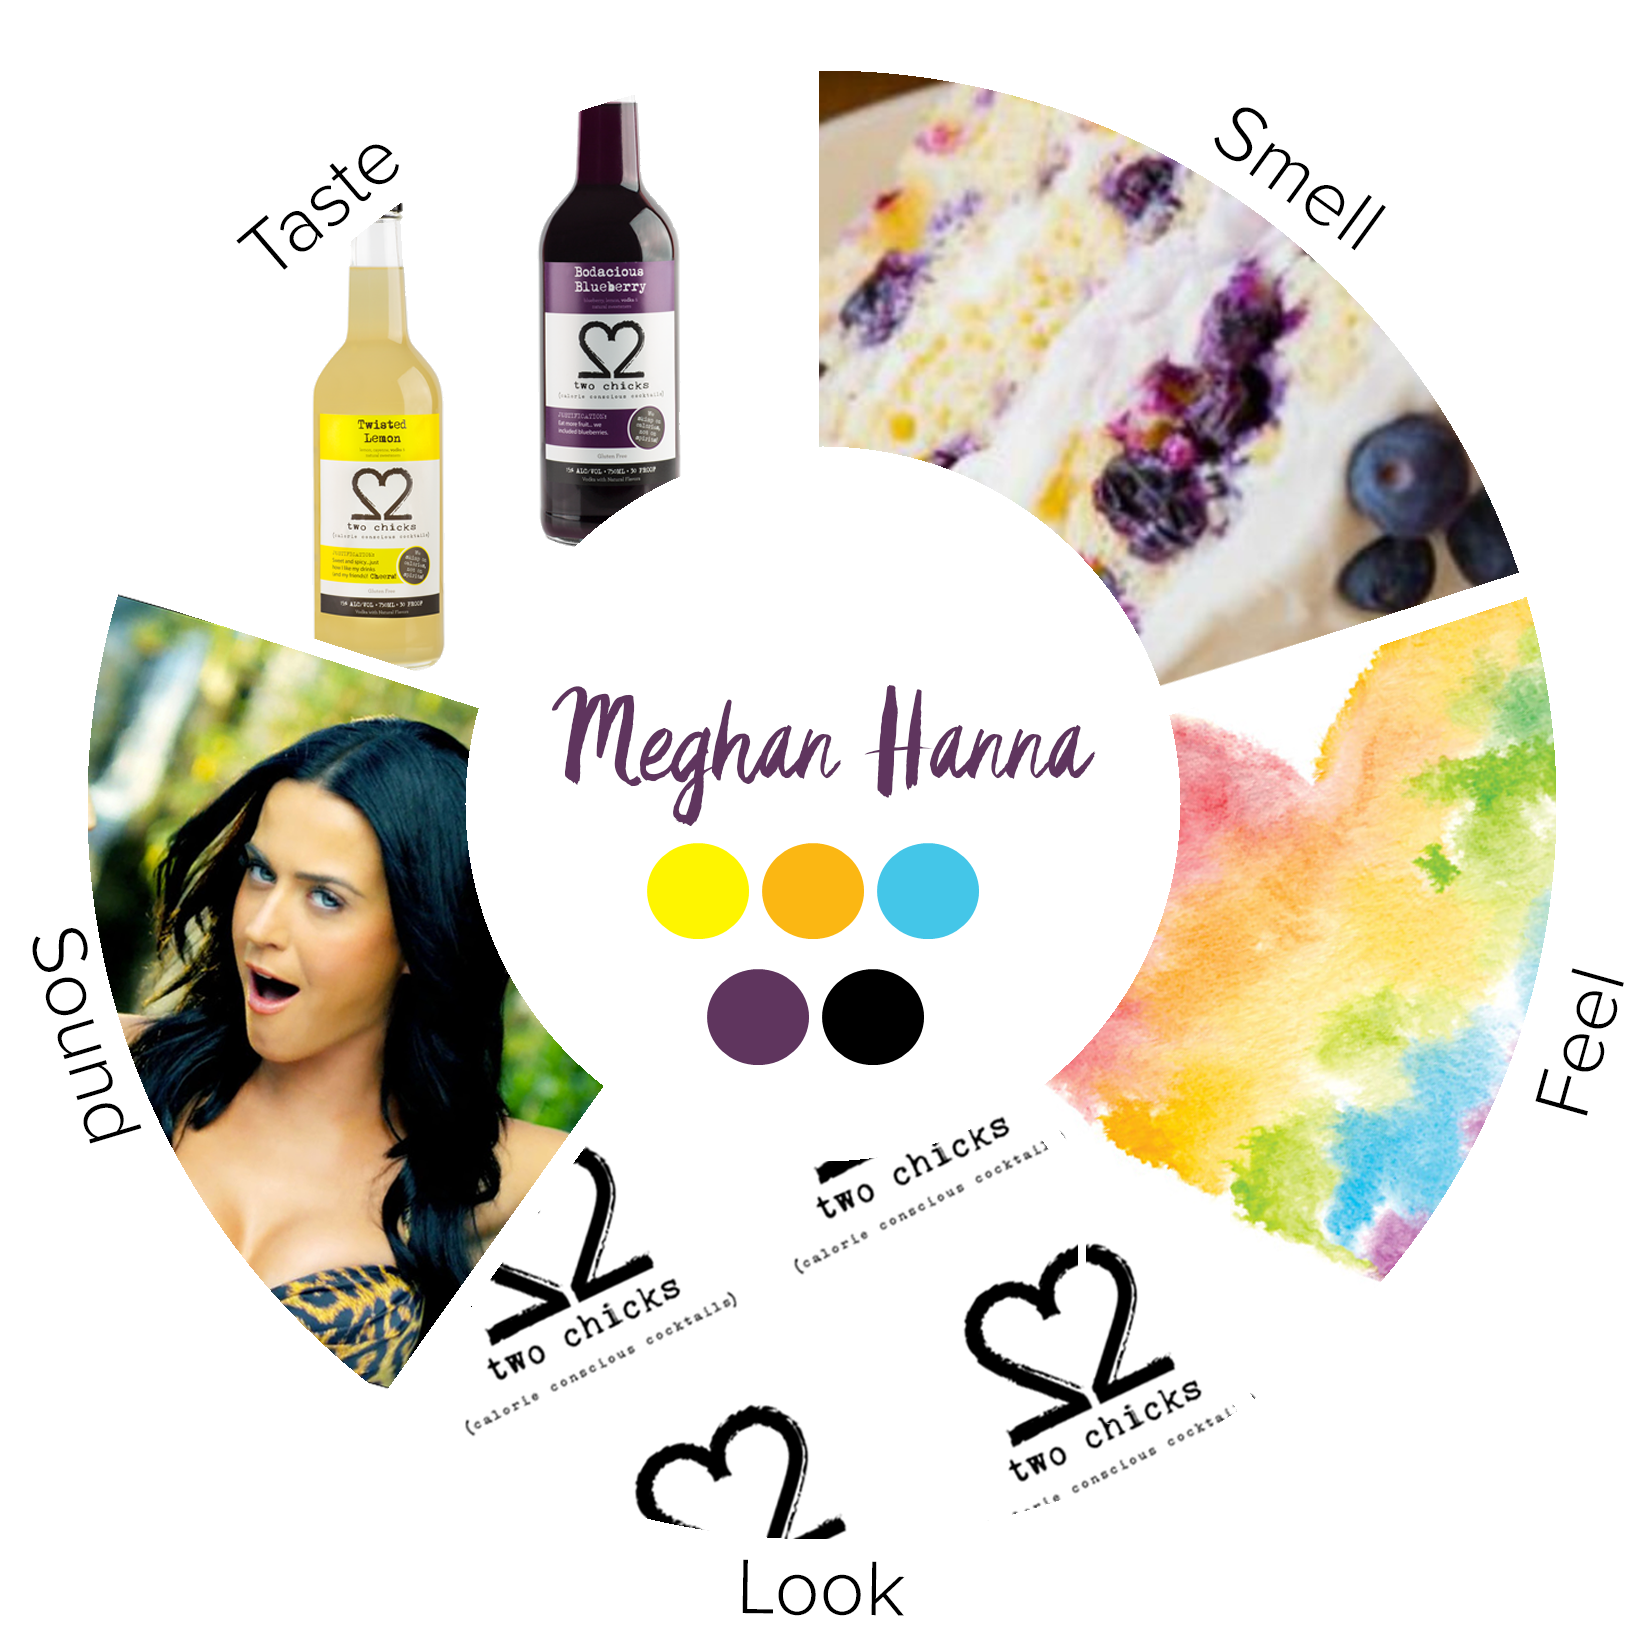 Meghan Hanna's Sensorial Mood Wheel was created by Laura Kyttanen. Cannot be reused without permission.